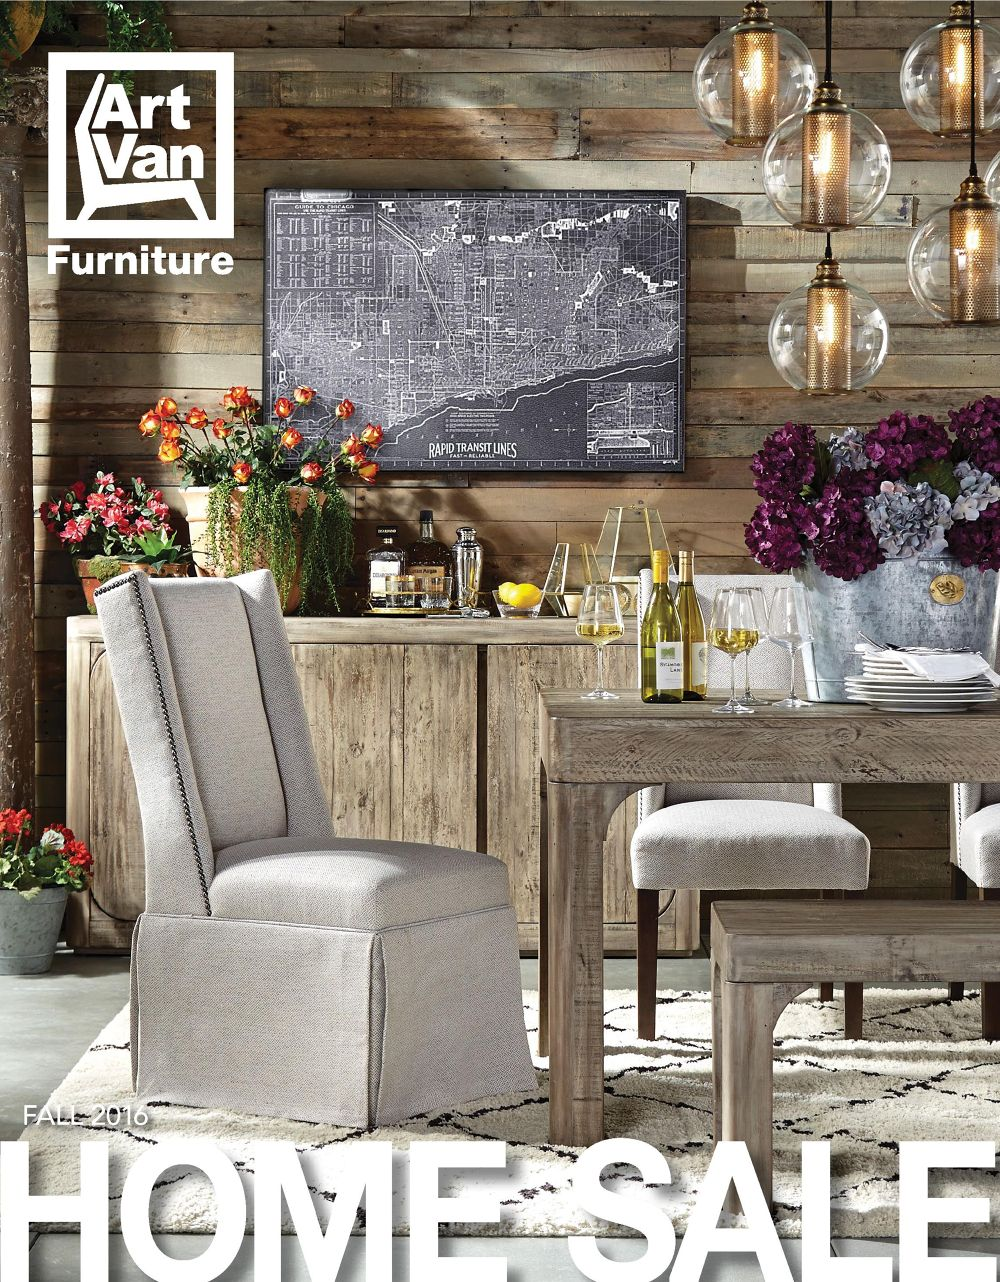 Art Van Furniture On Twitter Introducing The New Artvan Fall Home Sale Catalog 64pgs Of